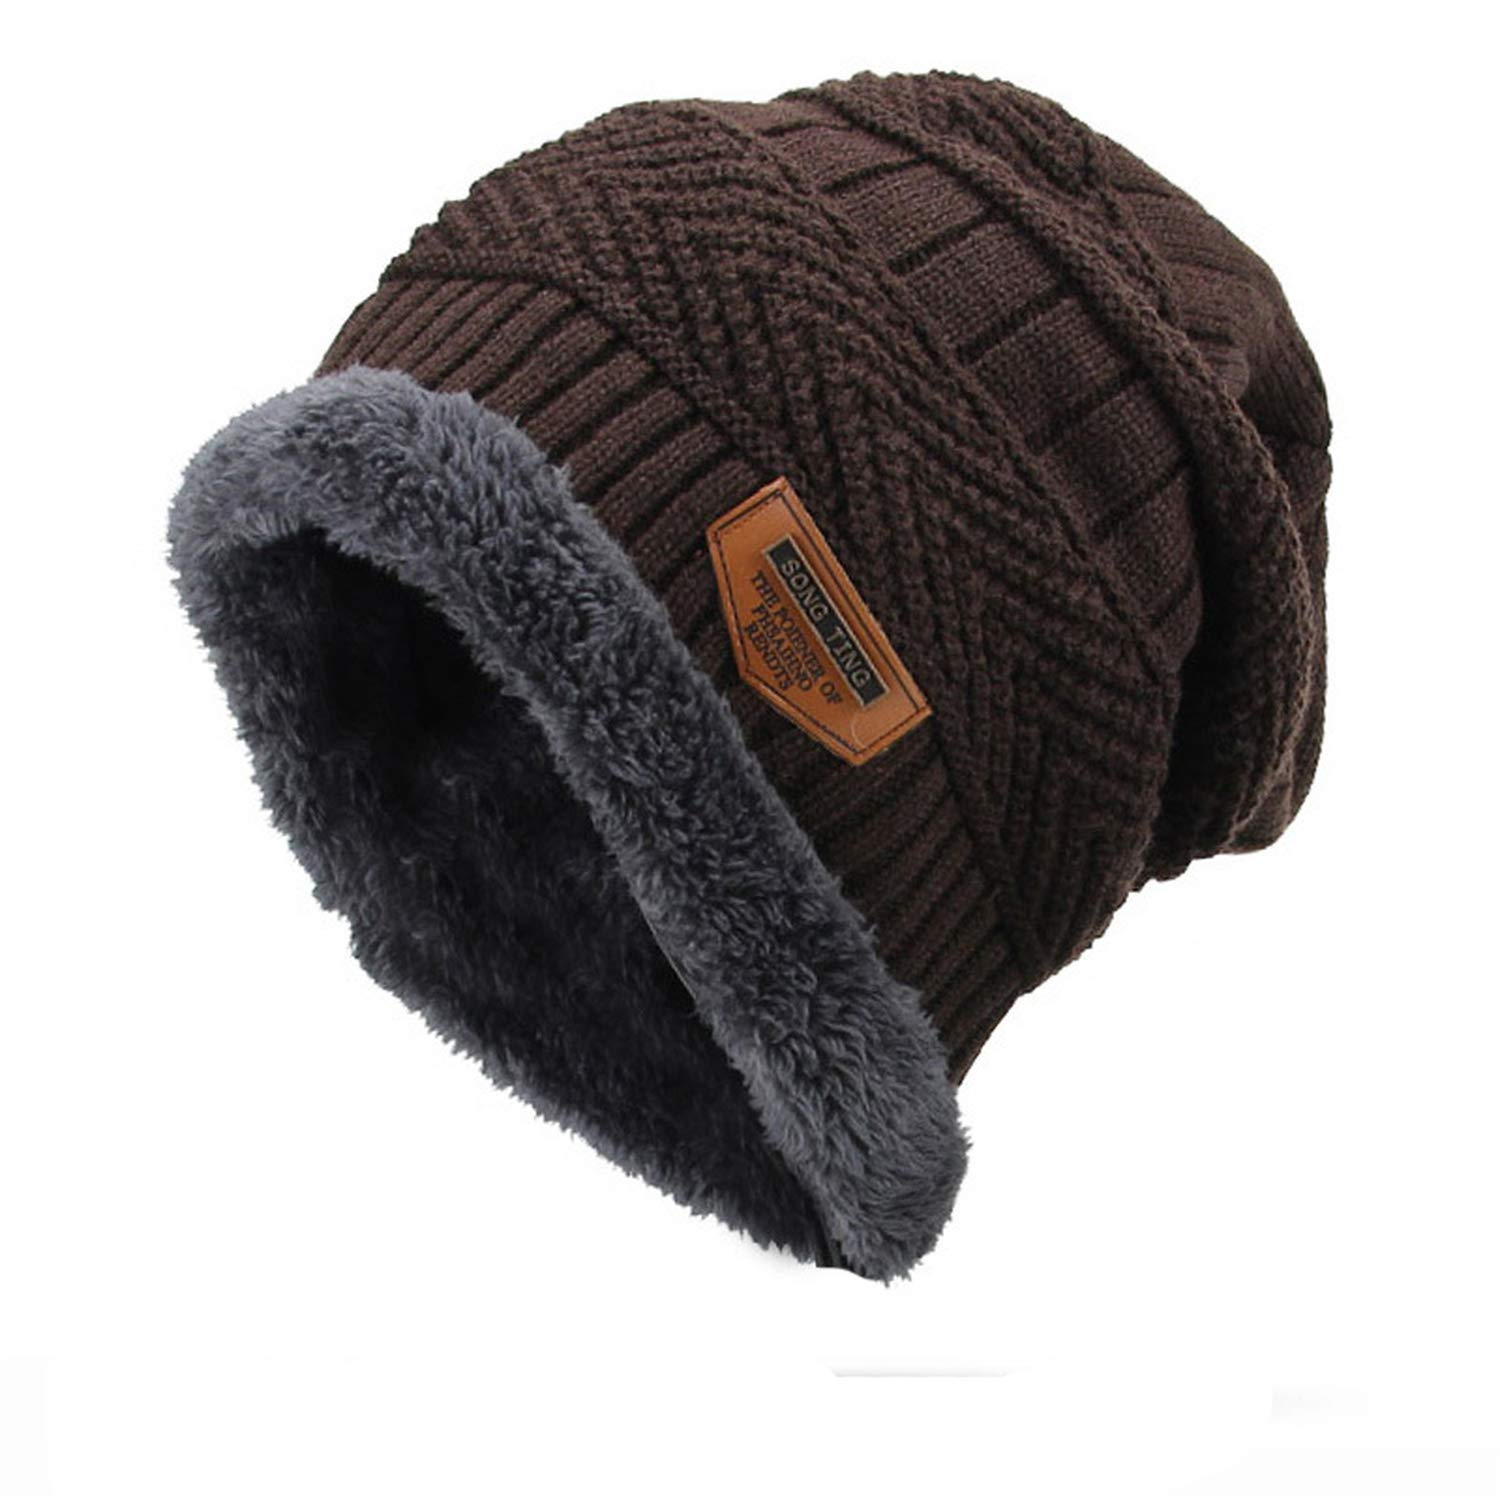 2018 Skullies Beanies Men Winter Hats Thick and Warm and Bonnet Soft Knitted Beanies Women Men Cotton Ball Cap